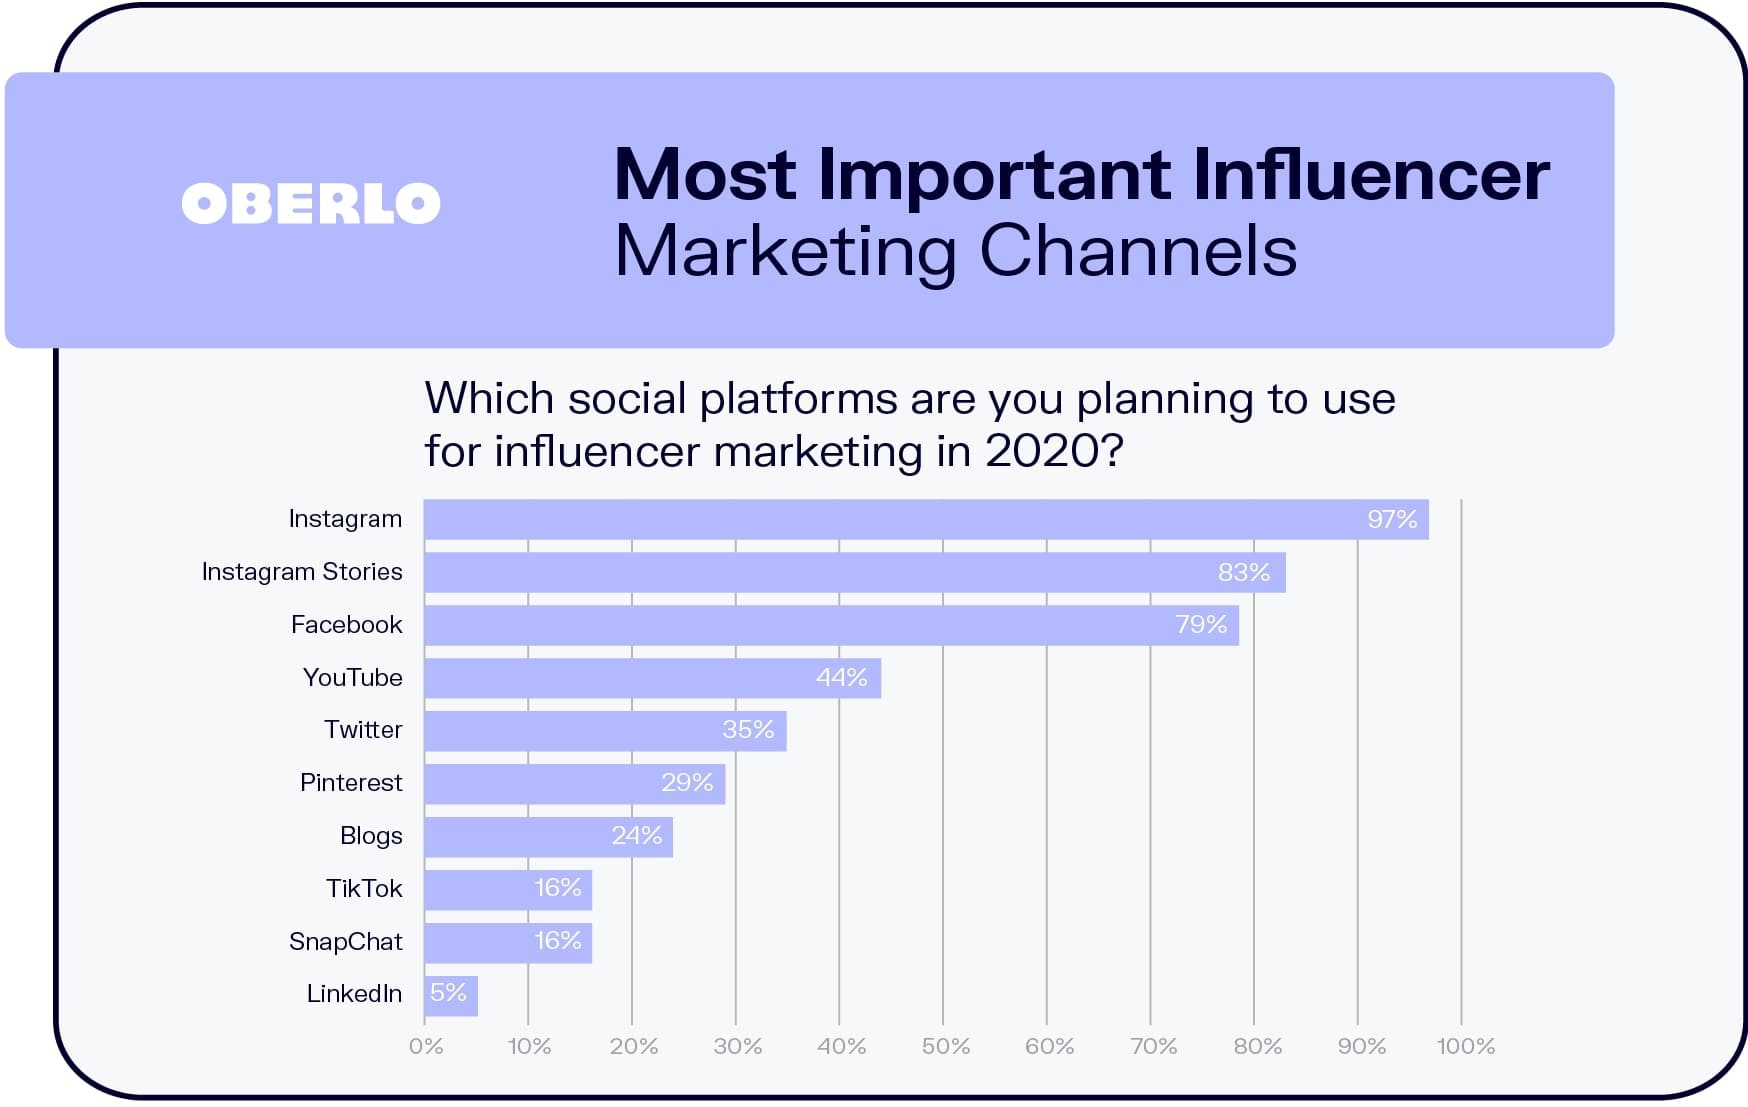 Most Important Influencer Marketing Channels